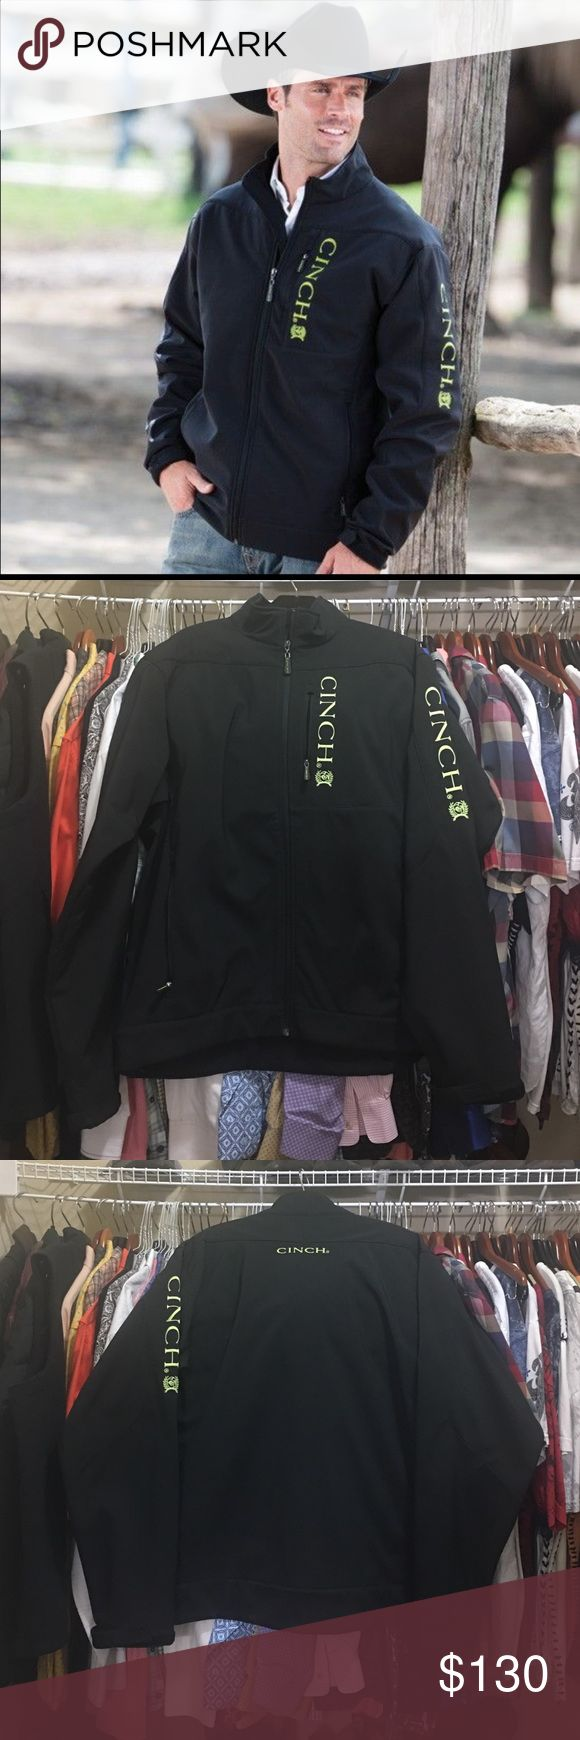 ✨CINCH MEN JACKET✨ In EXCELLENT CONDITION USEN ONCE !!! 93% Polyester / 7% Spandex Black Bonded Jacket Green Embroidered Logos Long Sleeves with Adjustable Cuff Zipper Front Closure Zip Front Hand Pockets Left Chest Zip Pocket with Logo Interior Velcro Concealed Carry Pockets Velcro Holster Included Mock Collar Cinch Hem Machine Wash *Cavender's Exclusive* Cinch Jackets & Coats